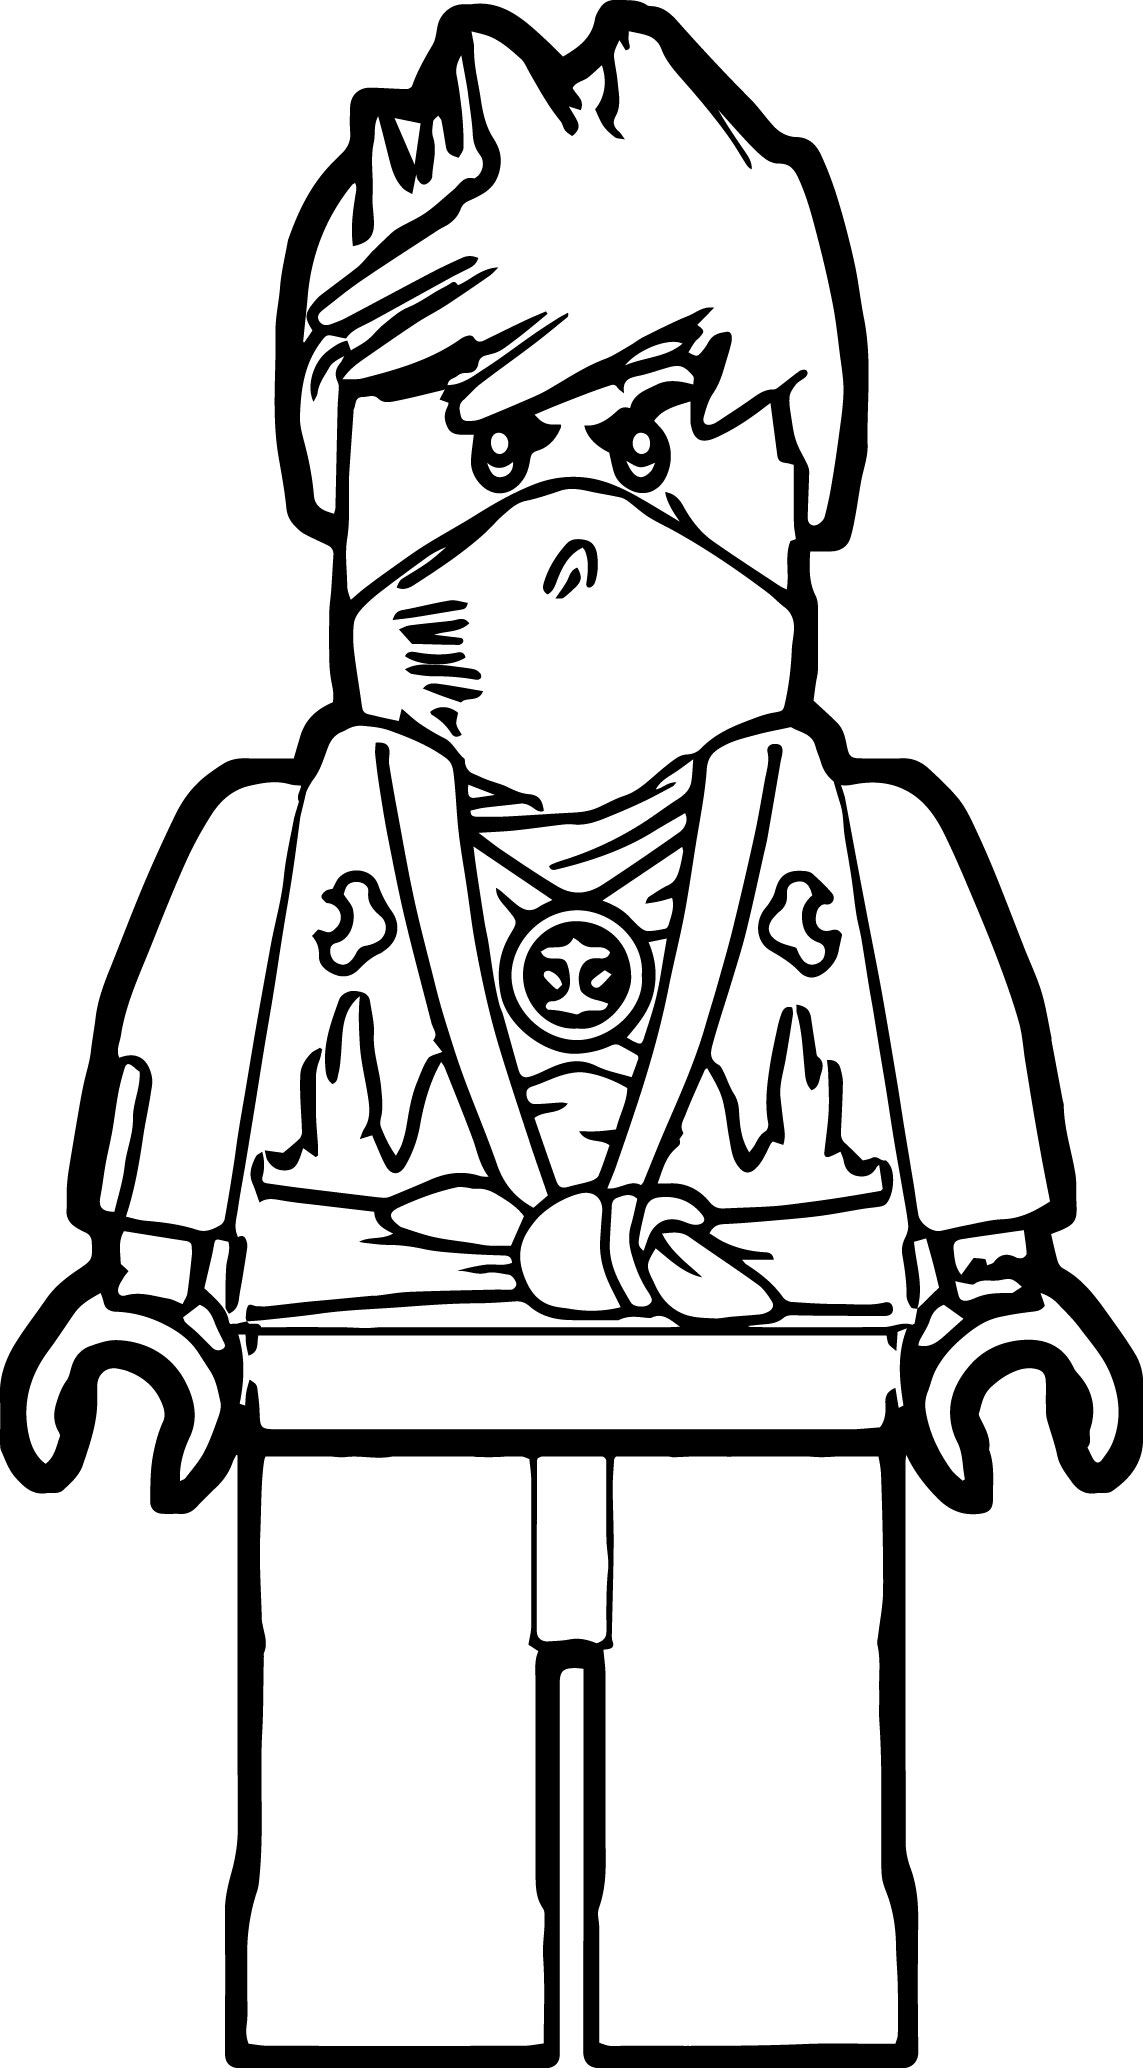 Lego drawings to colour